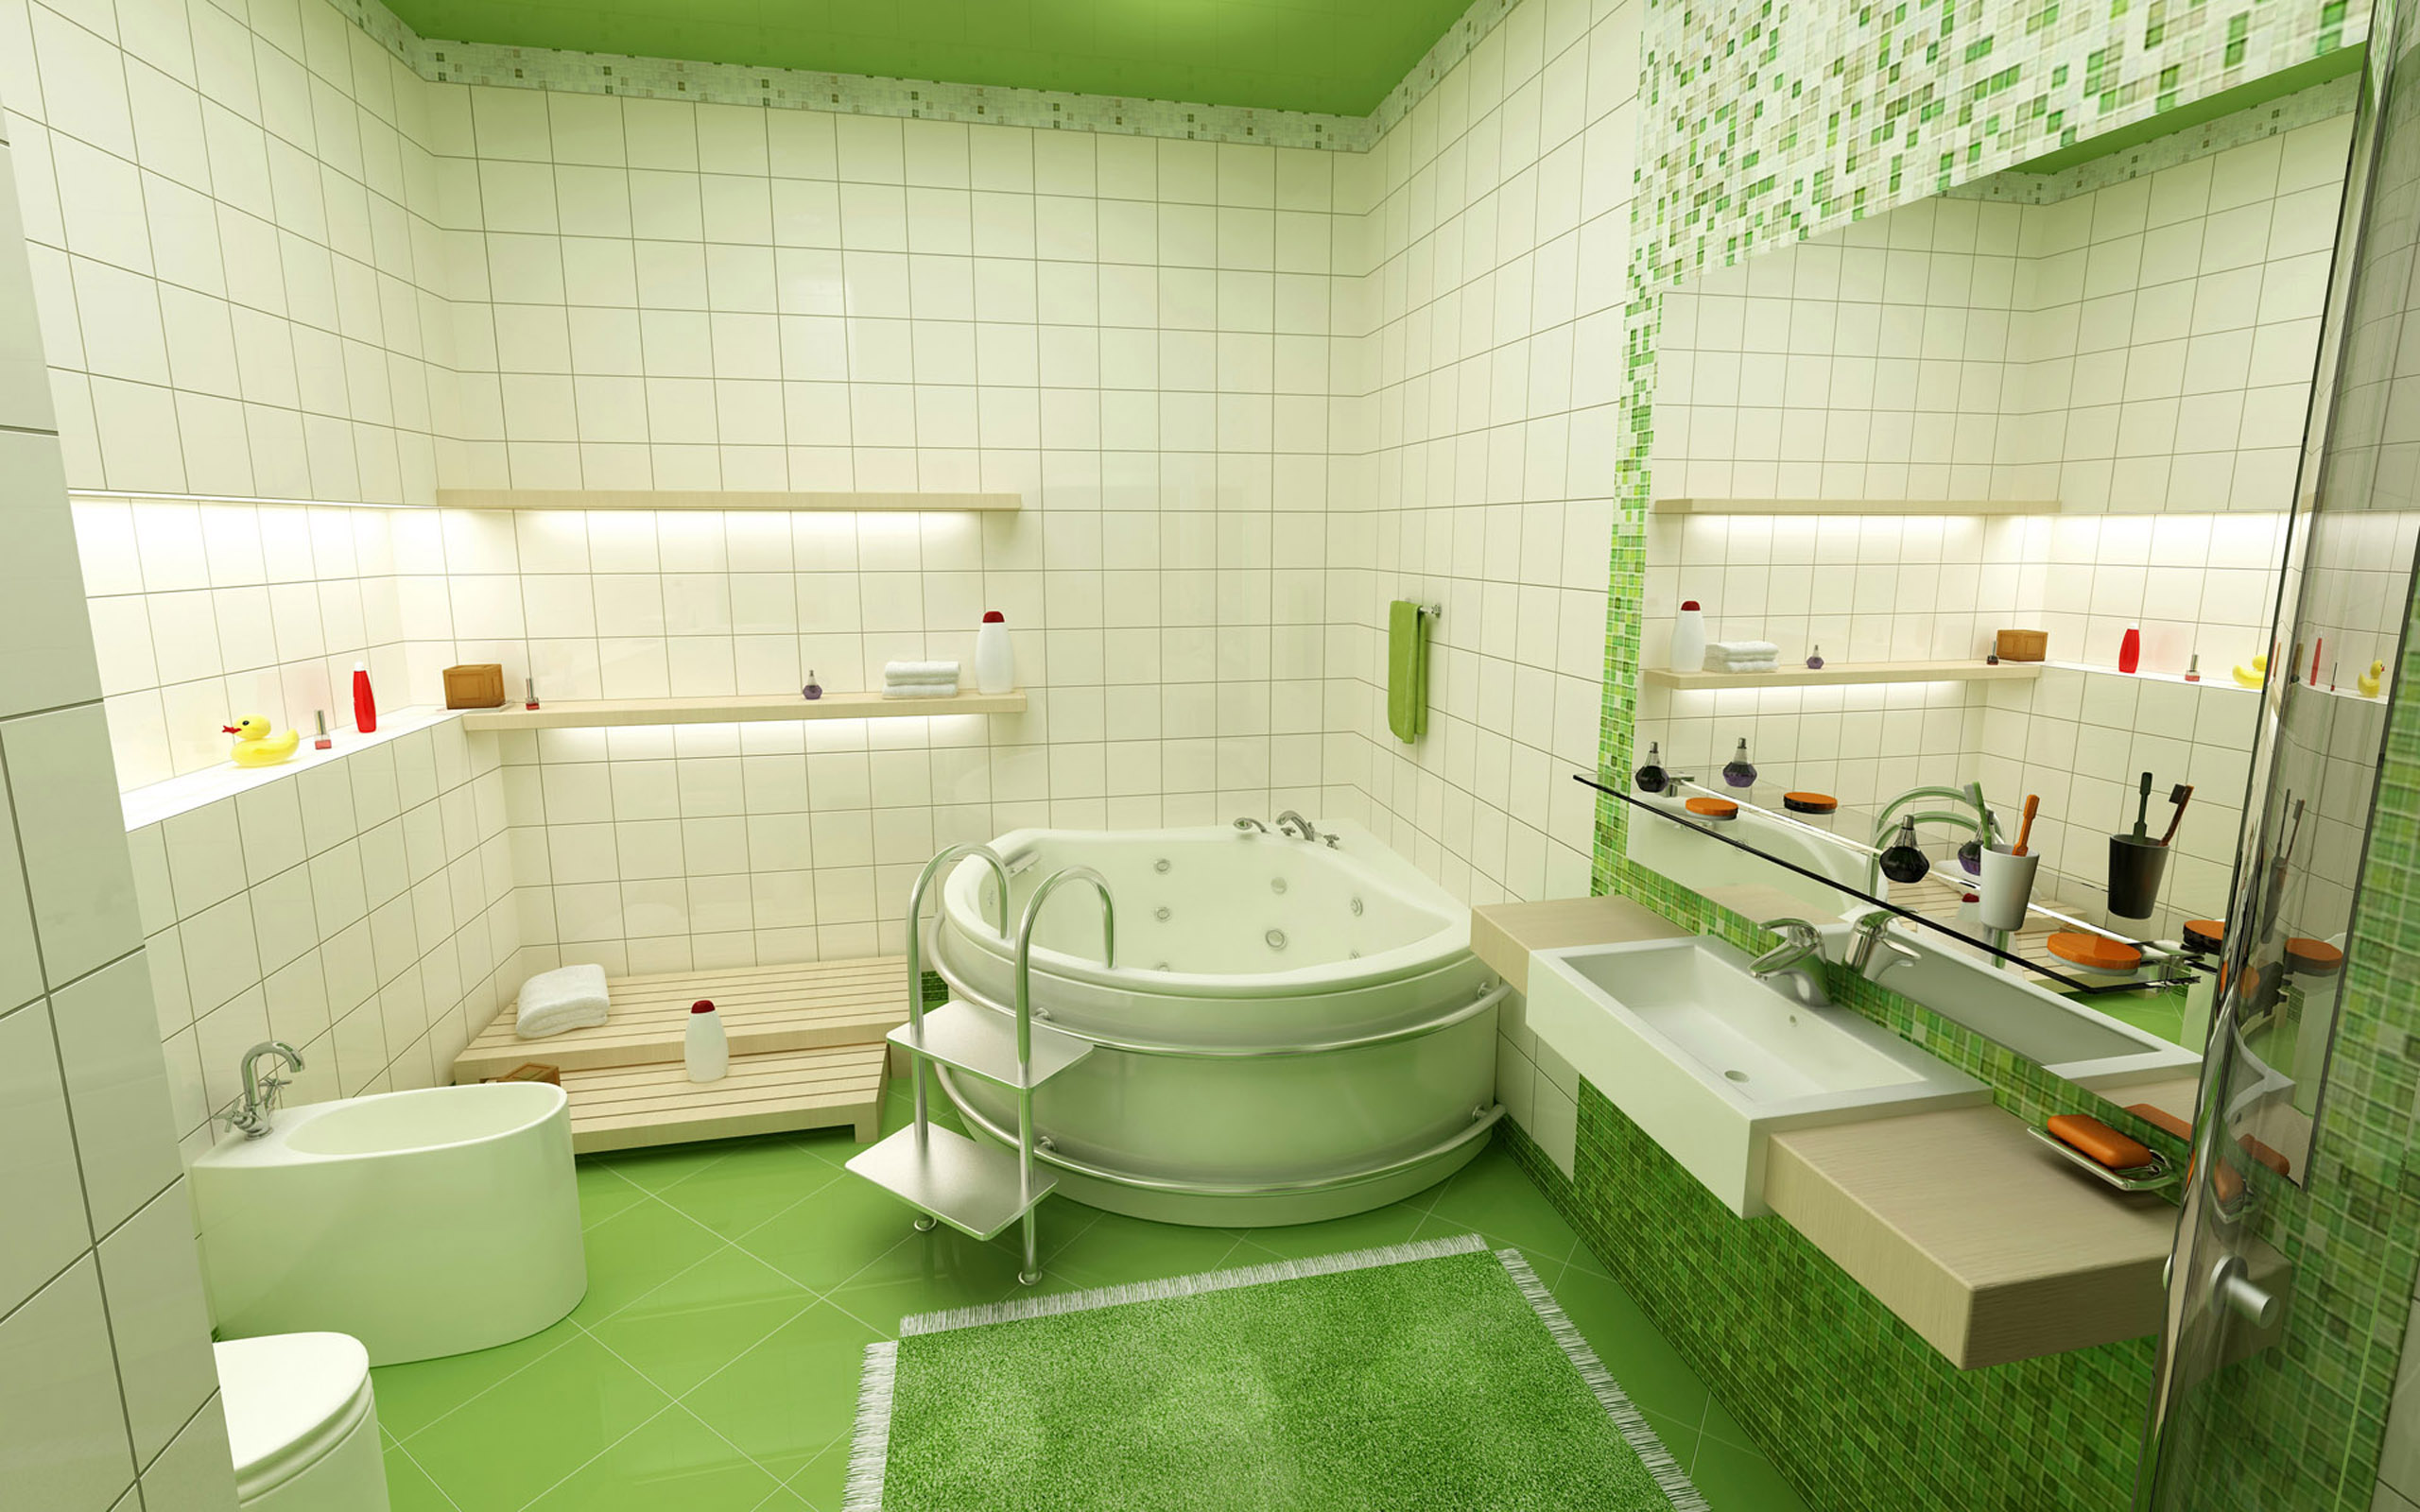 Bathroom-designs-bathroom-design-bathroom-carpet-bathroom-flooring